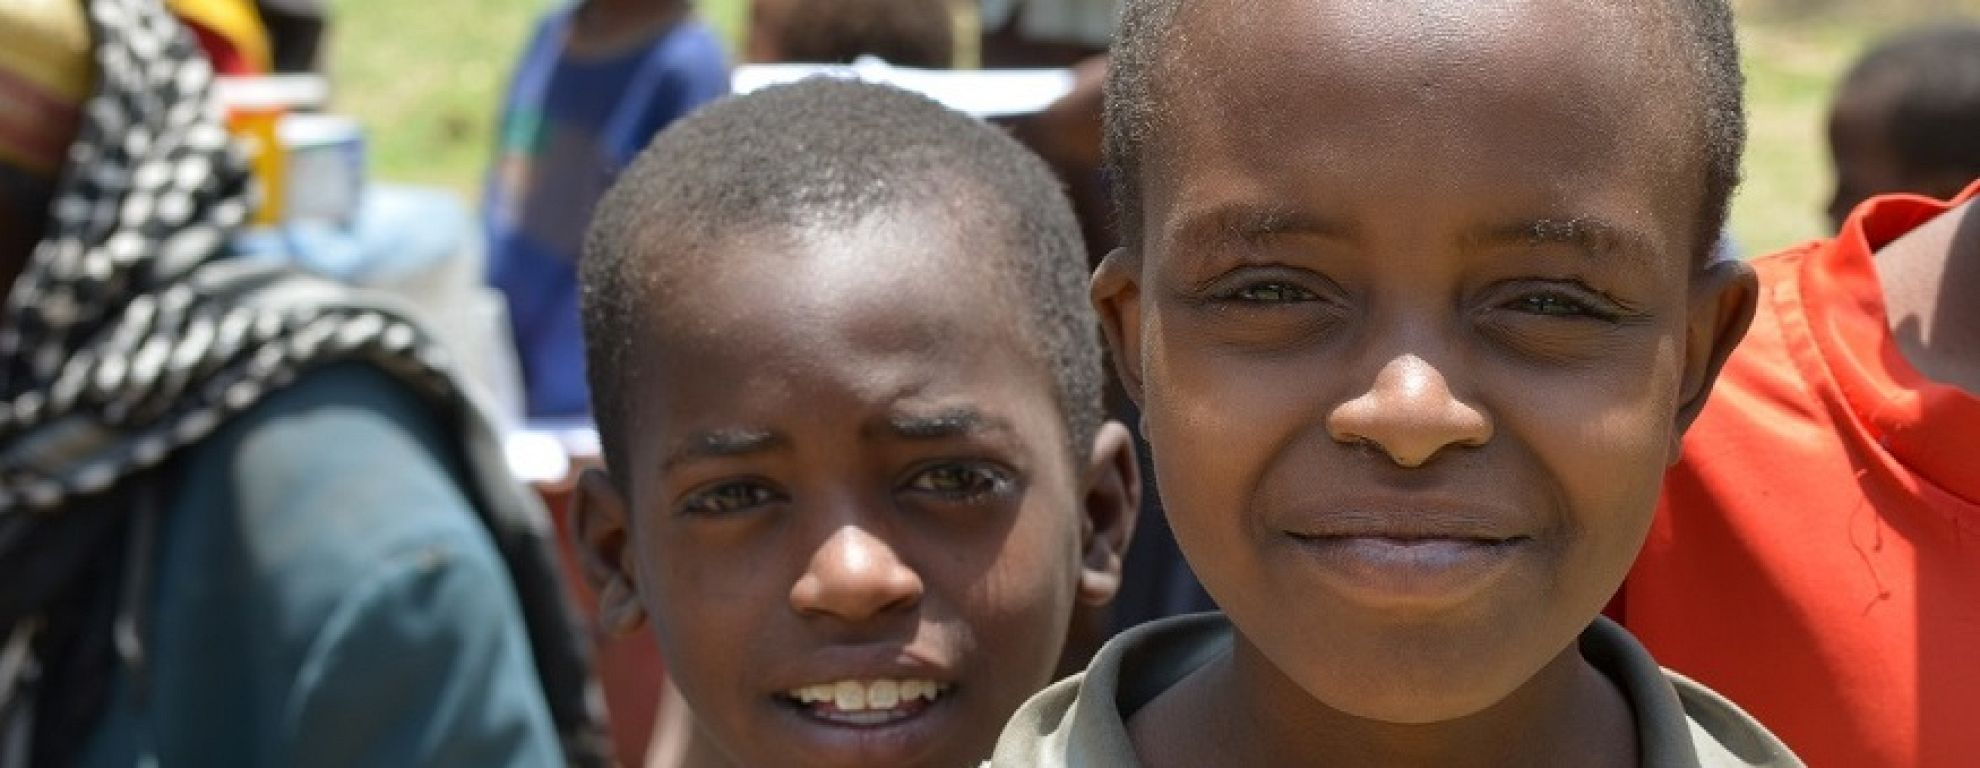 Latest News Scale up of effective malaria control dramatically reduces deaths